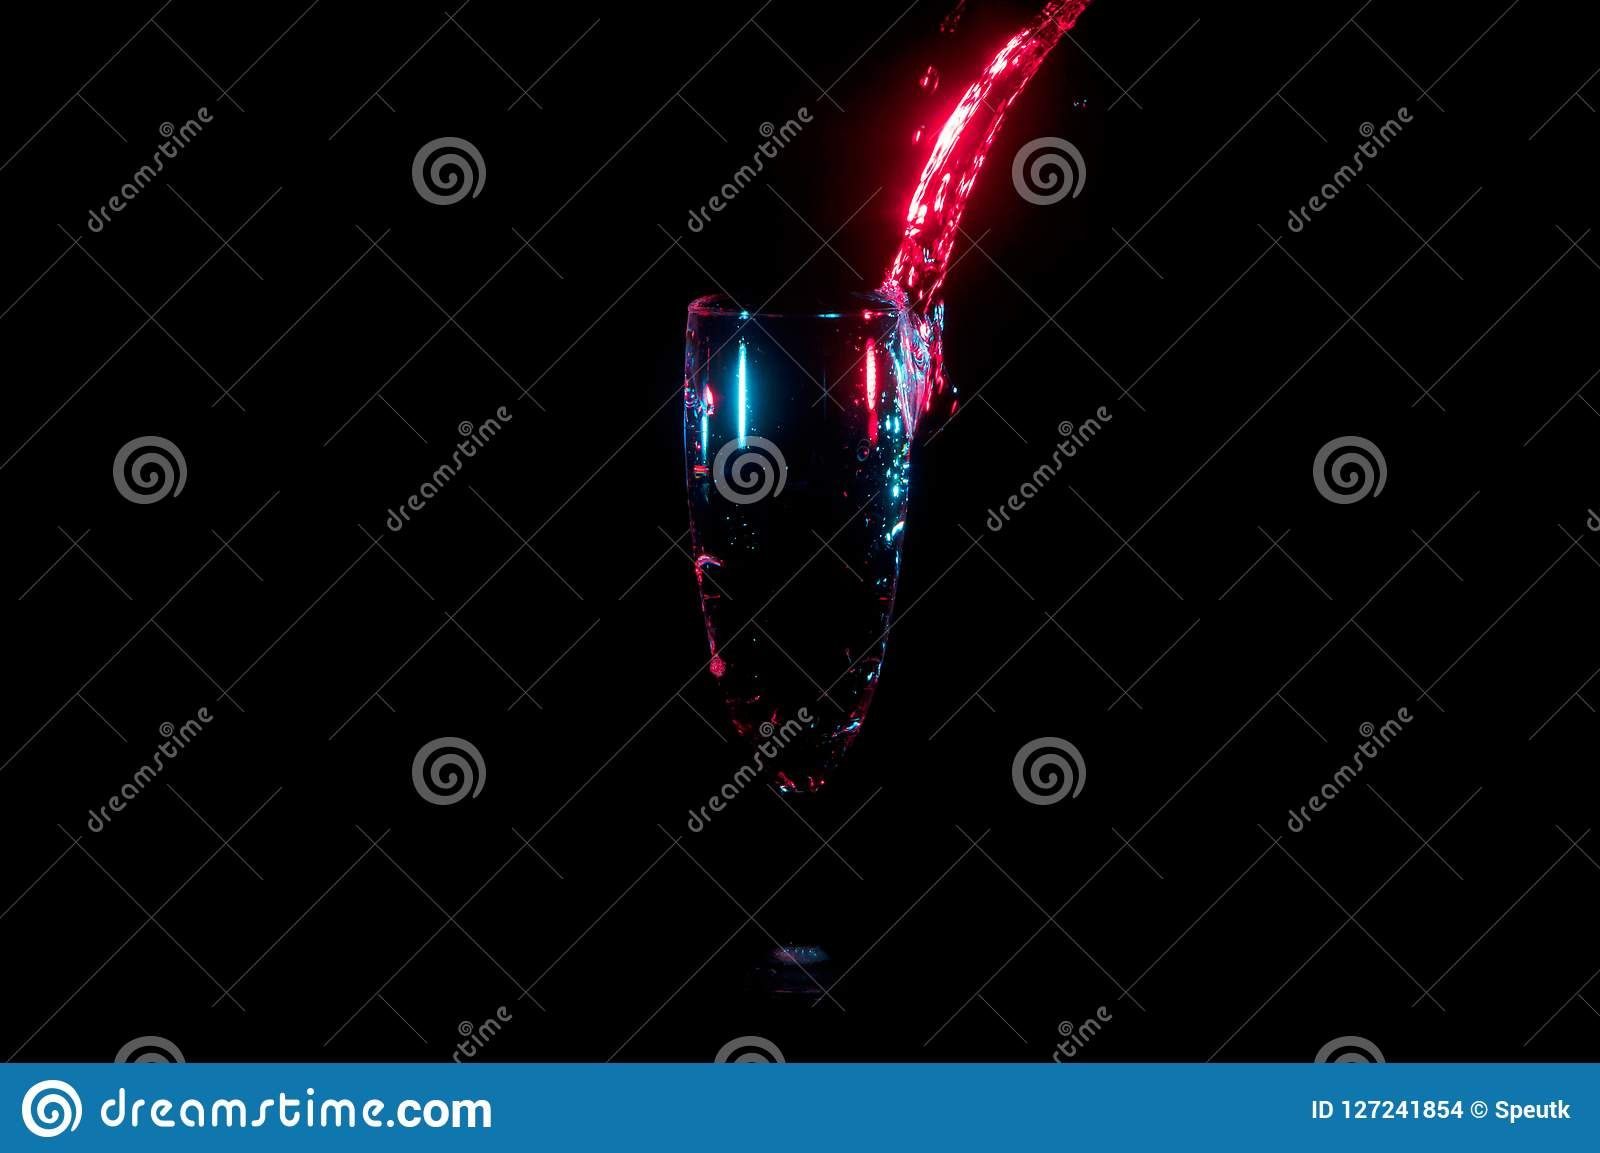 Bright red water stream pouring into a glass isolated on a black background